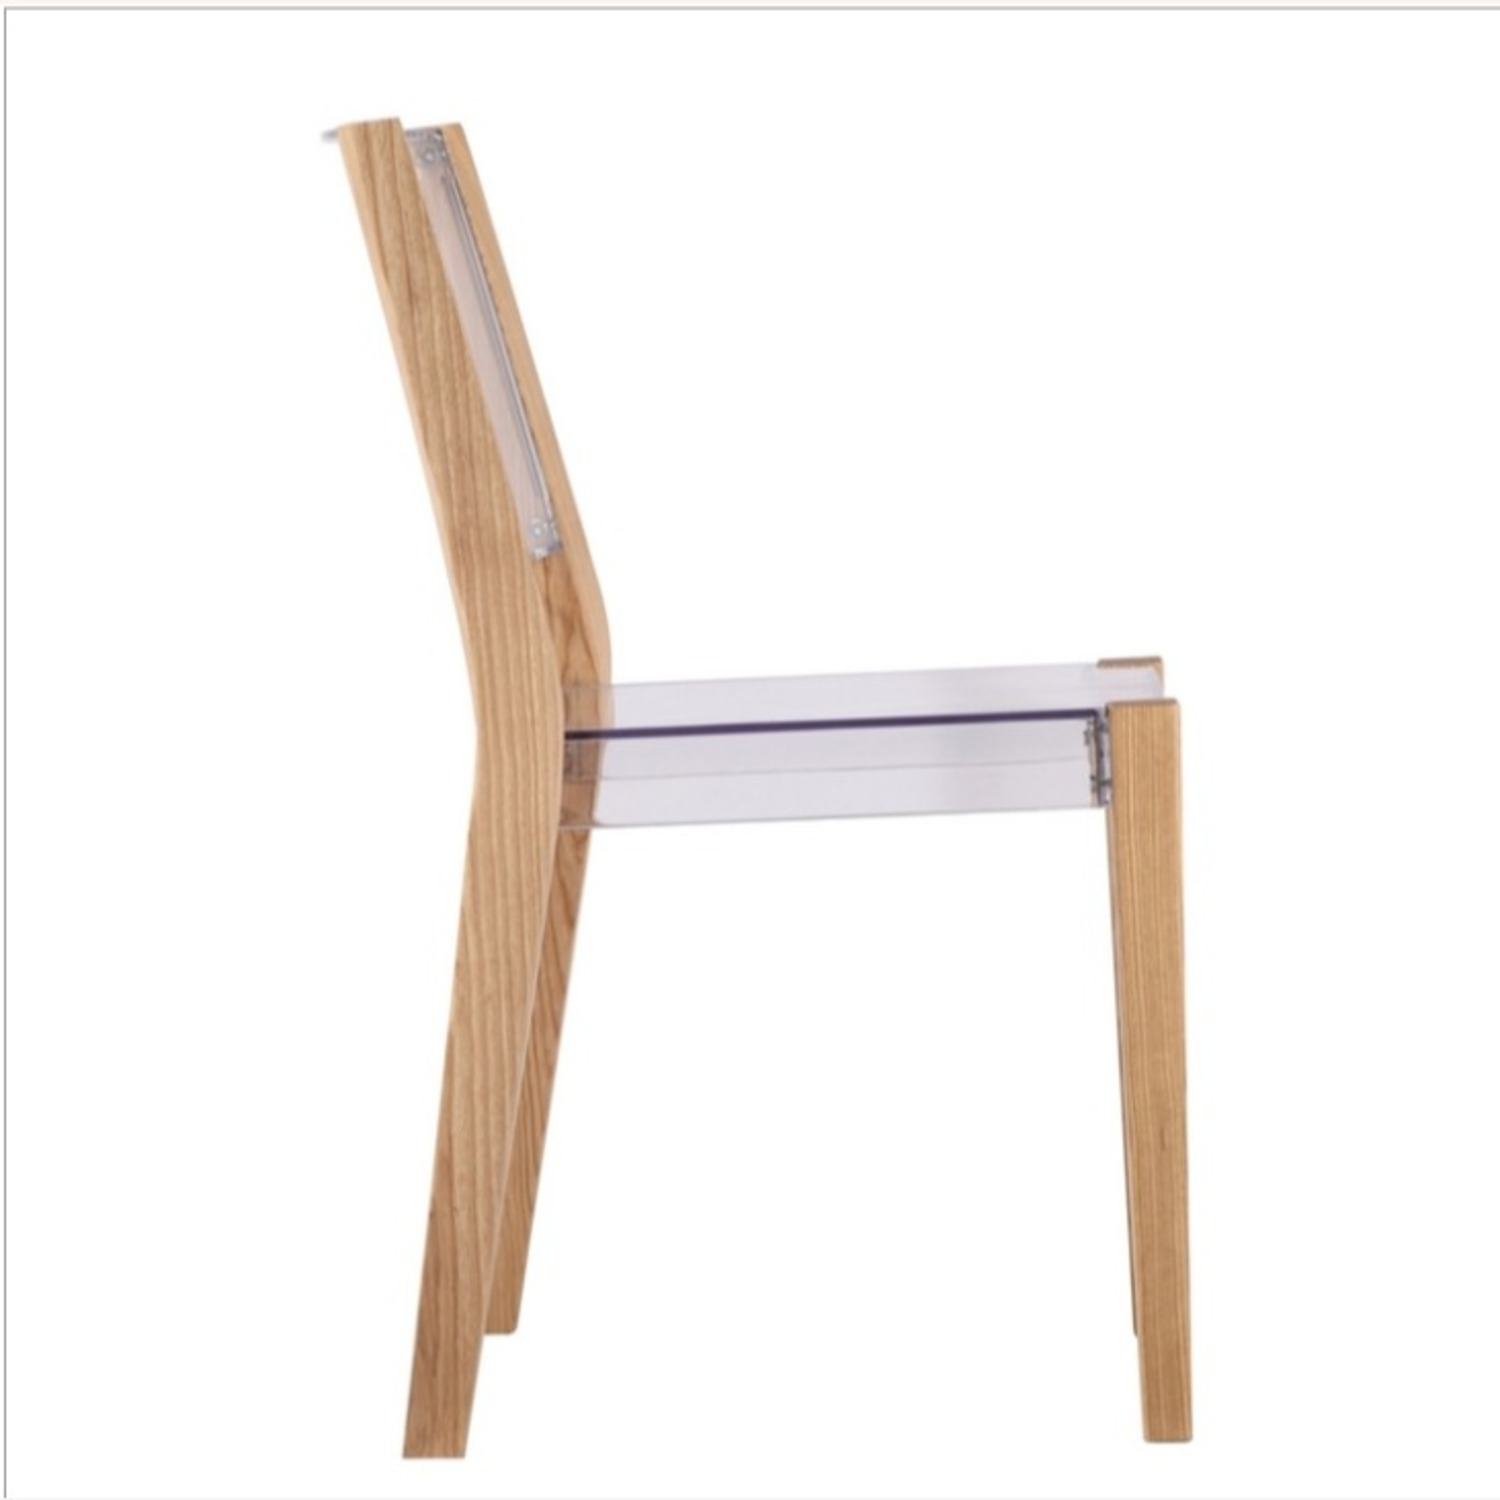 Side Chair In Natural Wood & Transparent Seat - image-1